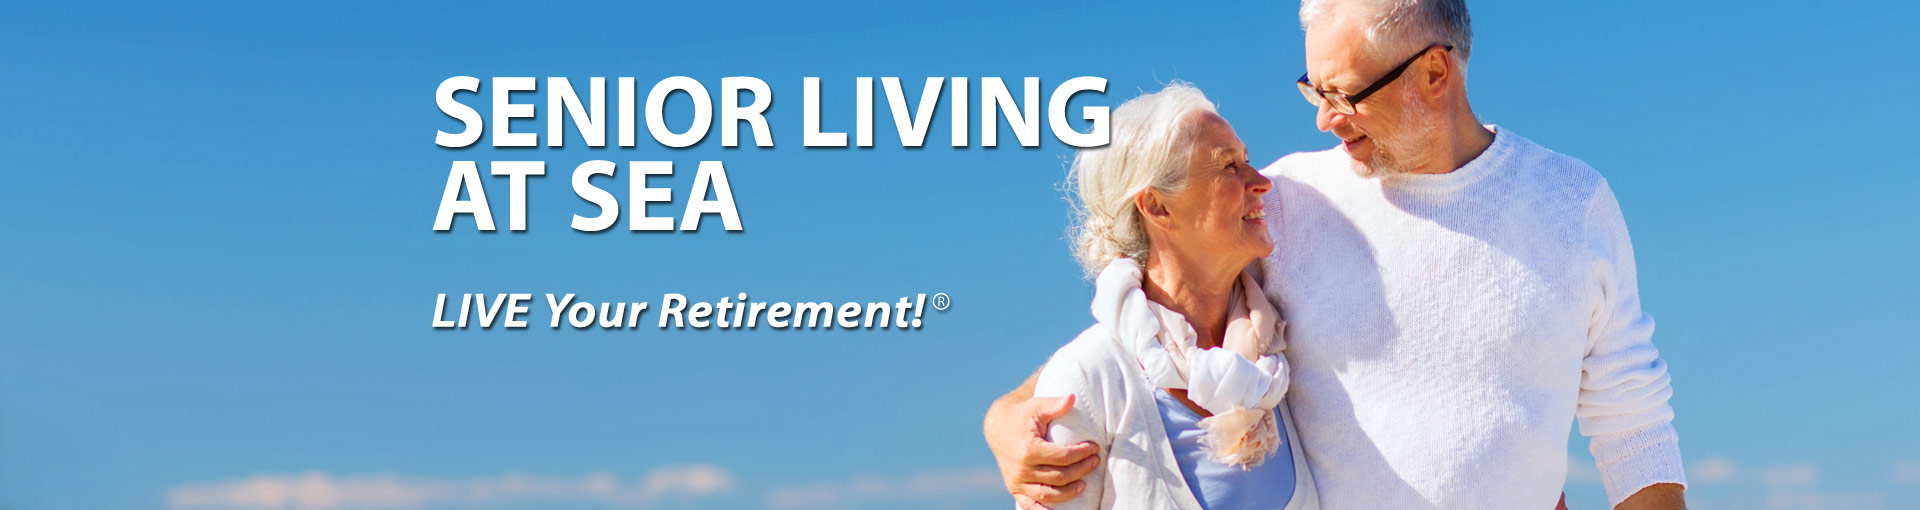 Senior Living at Sea - Retired couple